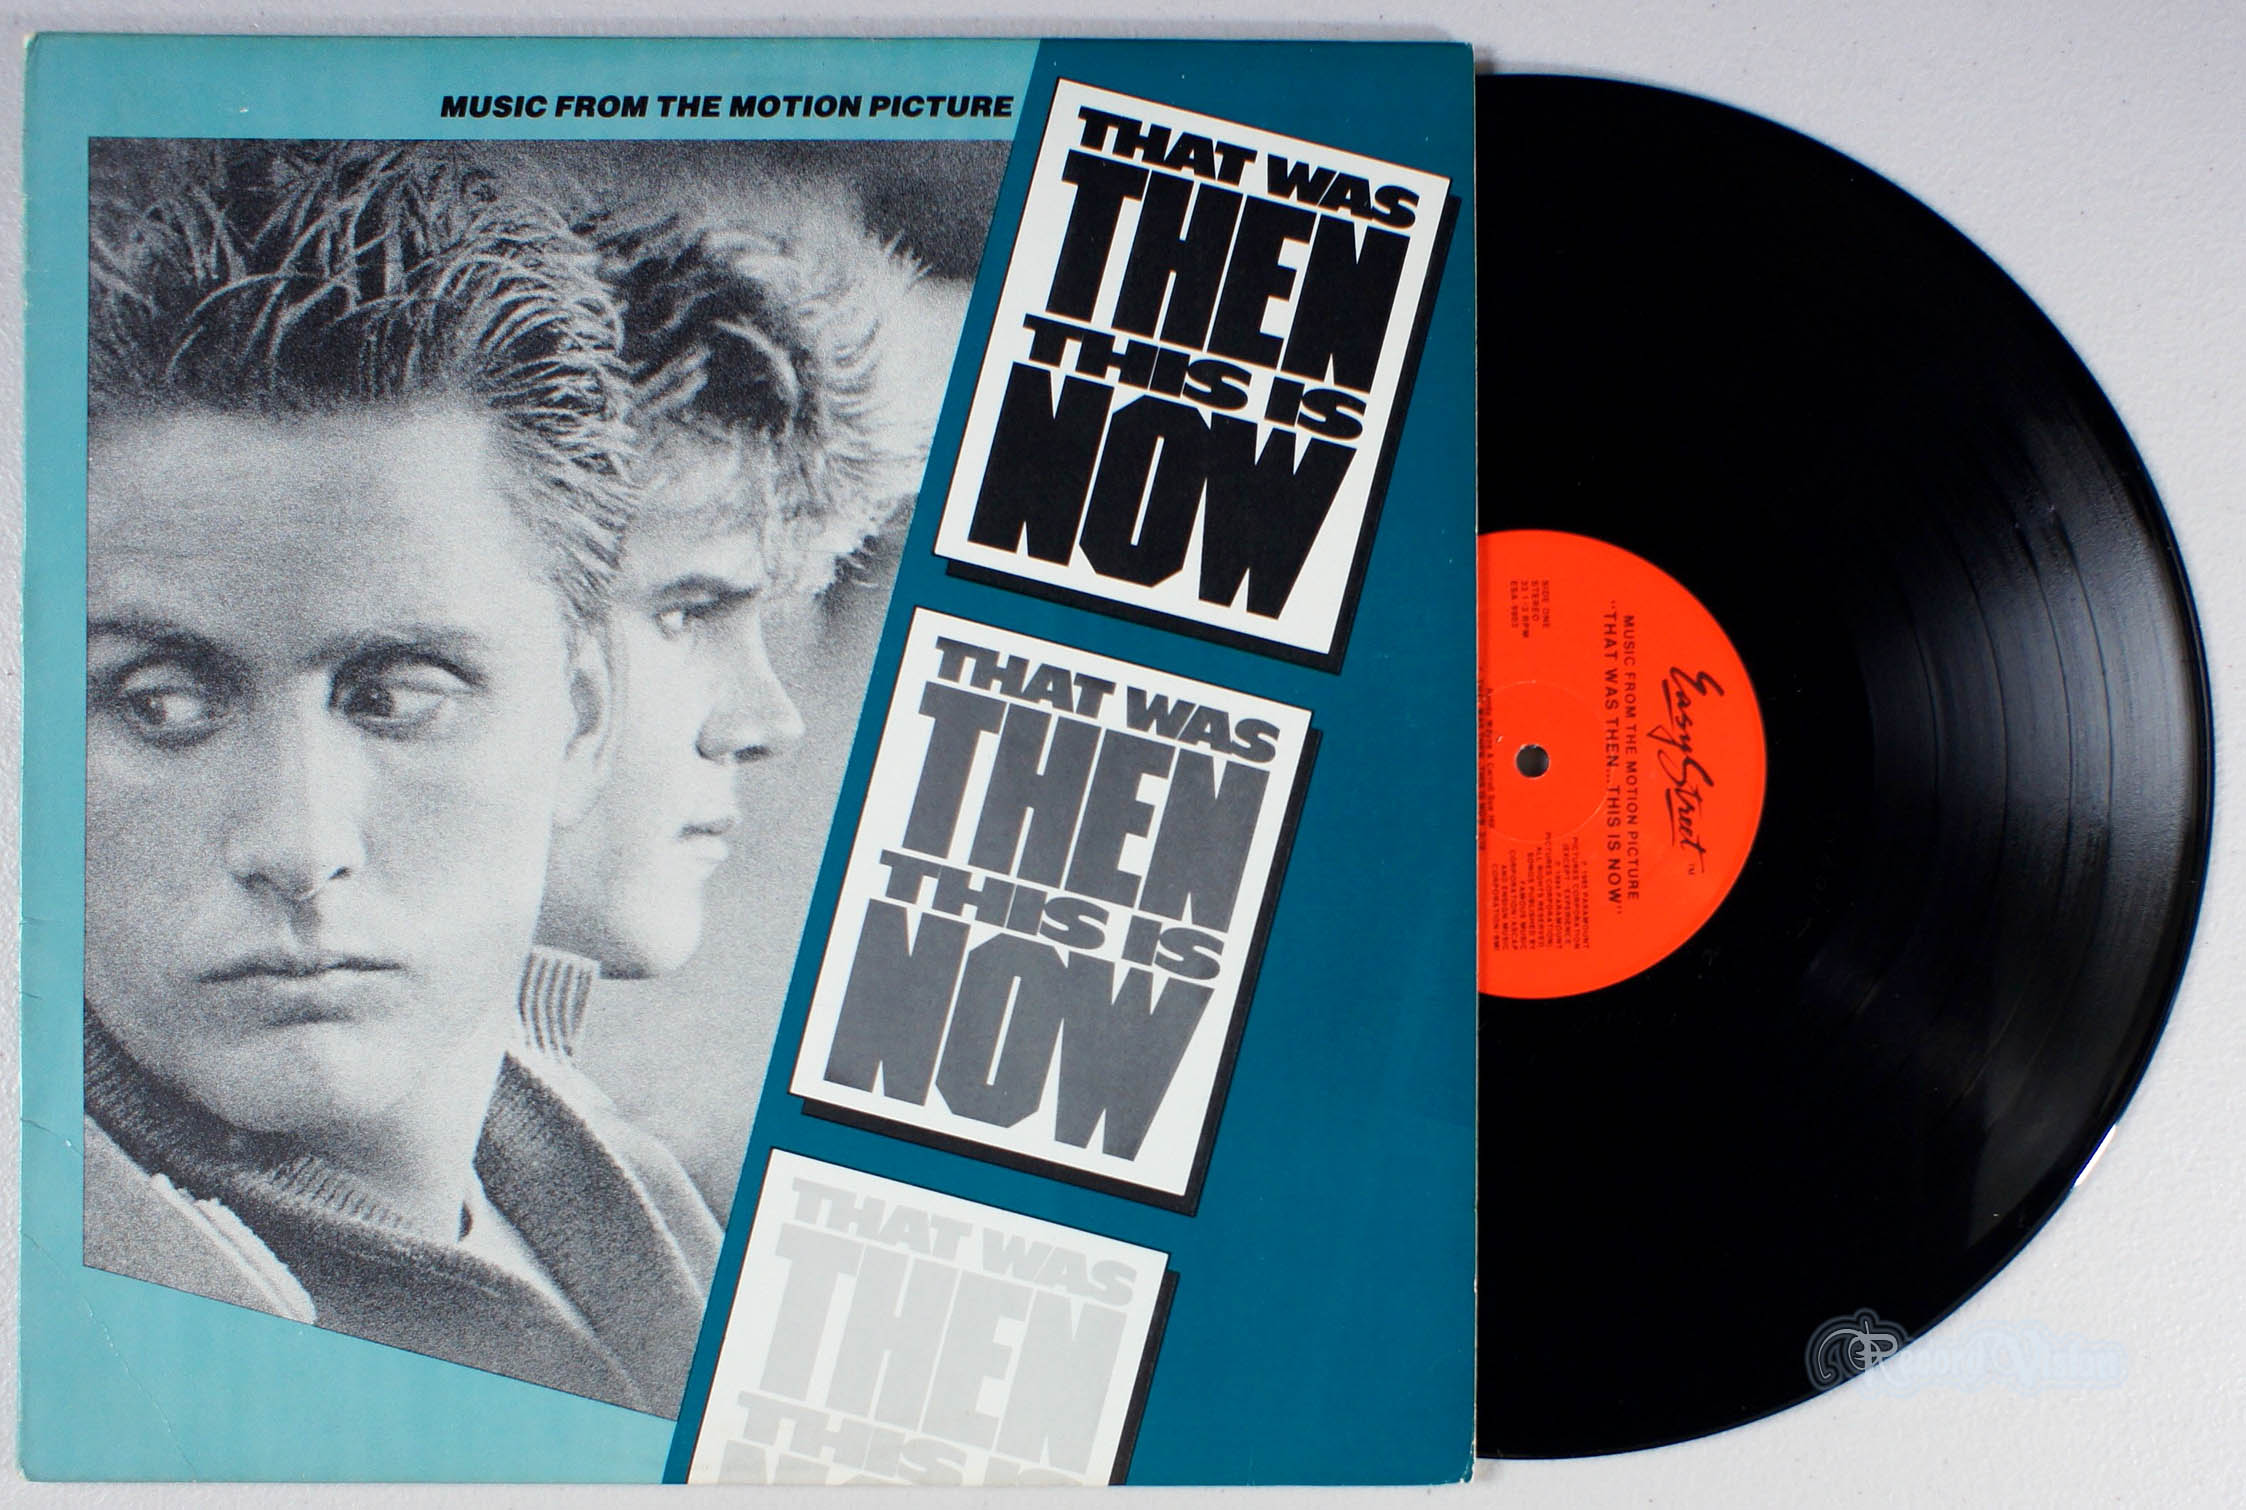 ASSORTED (SOUNDTRACK) - That Was Then This is Now - 33T